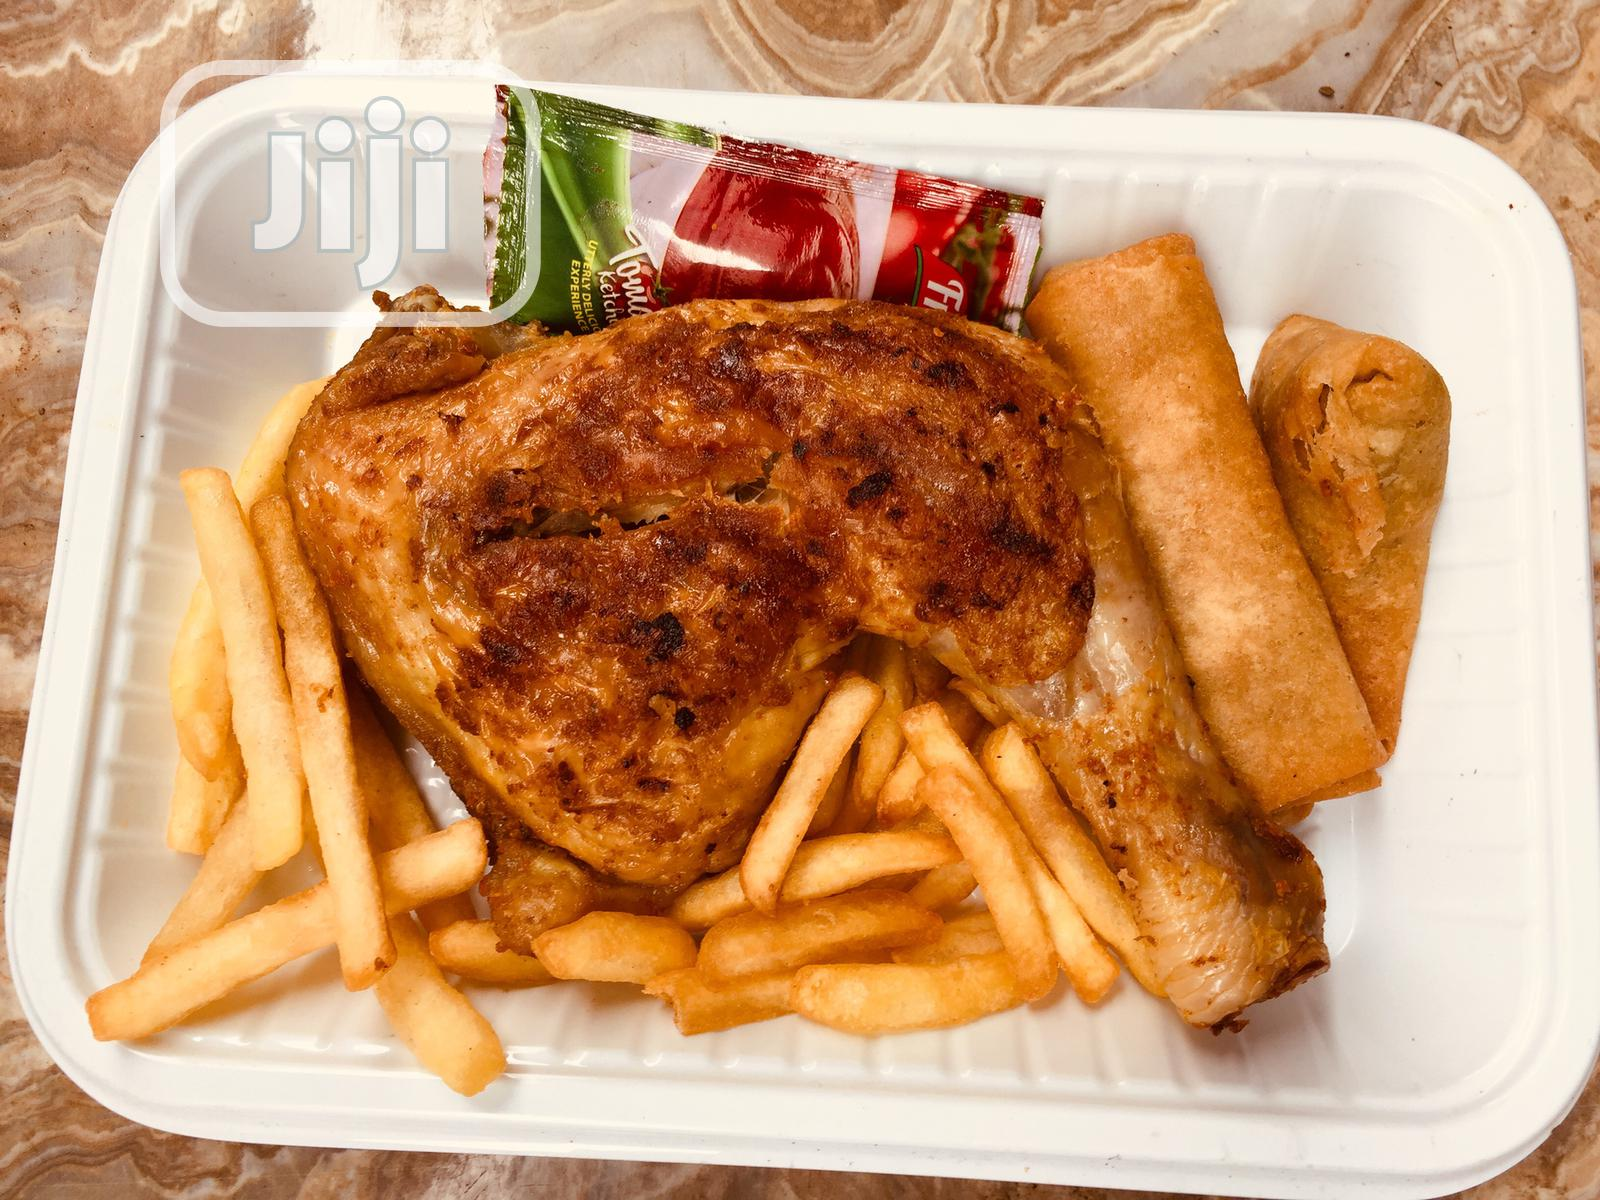 Chicken/Turkey, Chips Barbeque | Meals & Drinks for sale in Oshodi, Lagos State, Nigeria